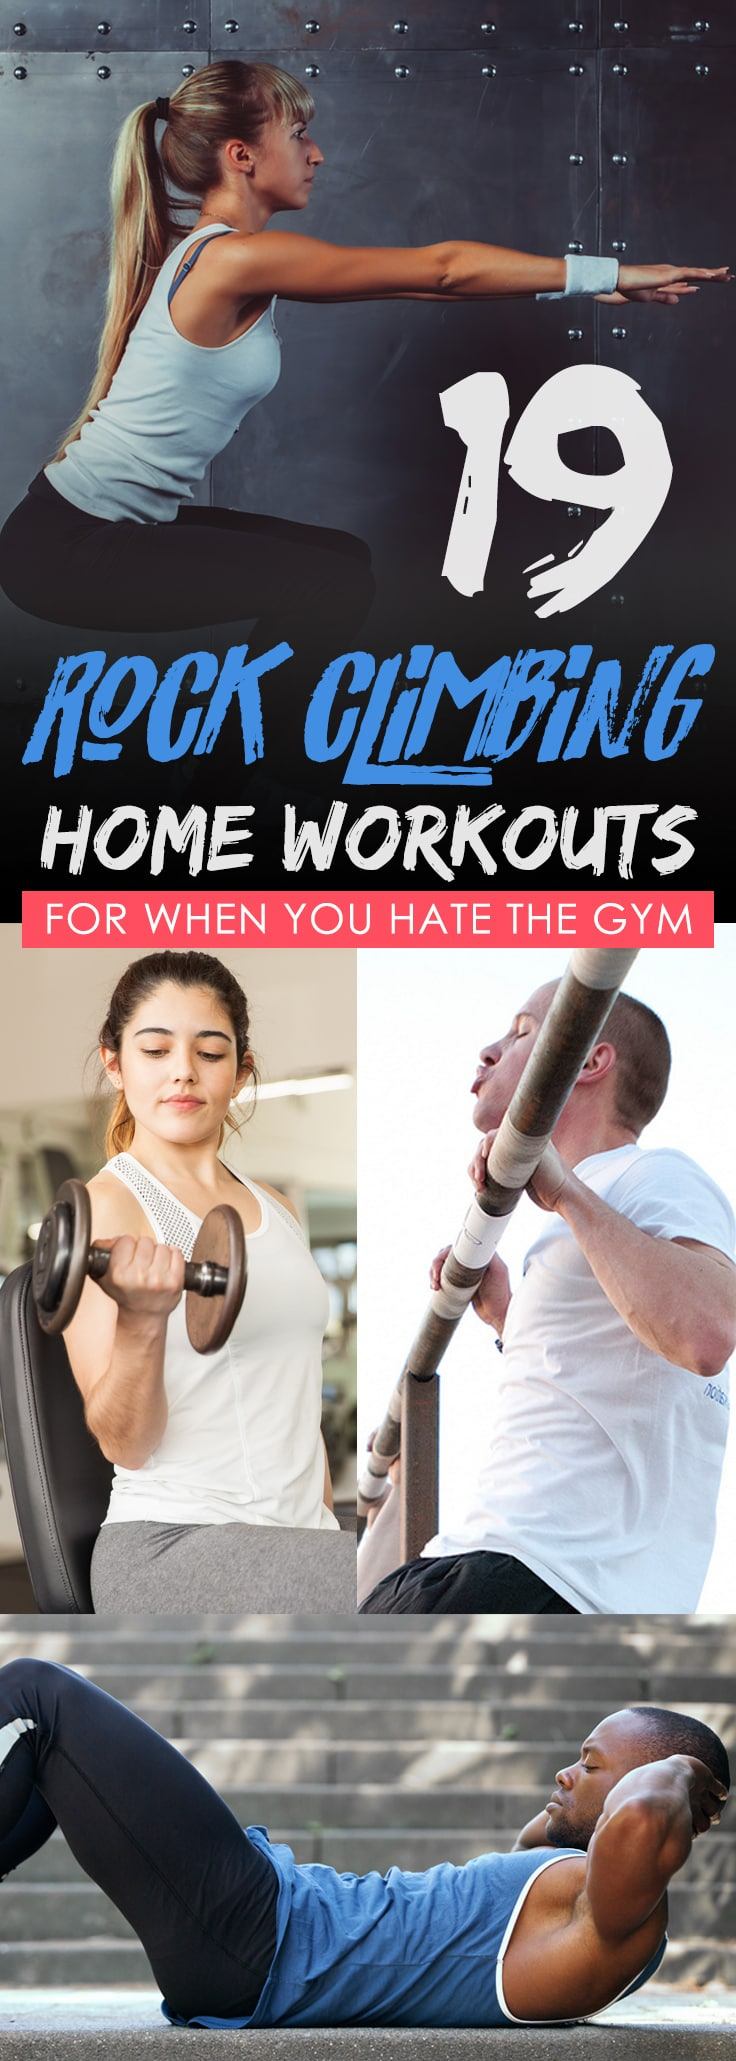 19 rock climbing home workouts for when you hate the gym!